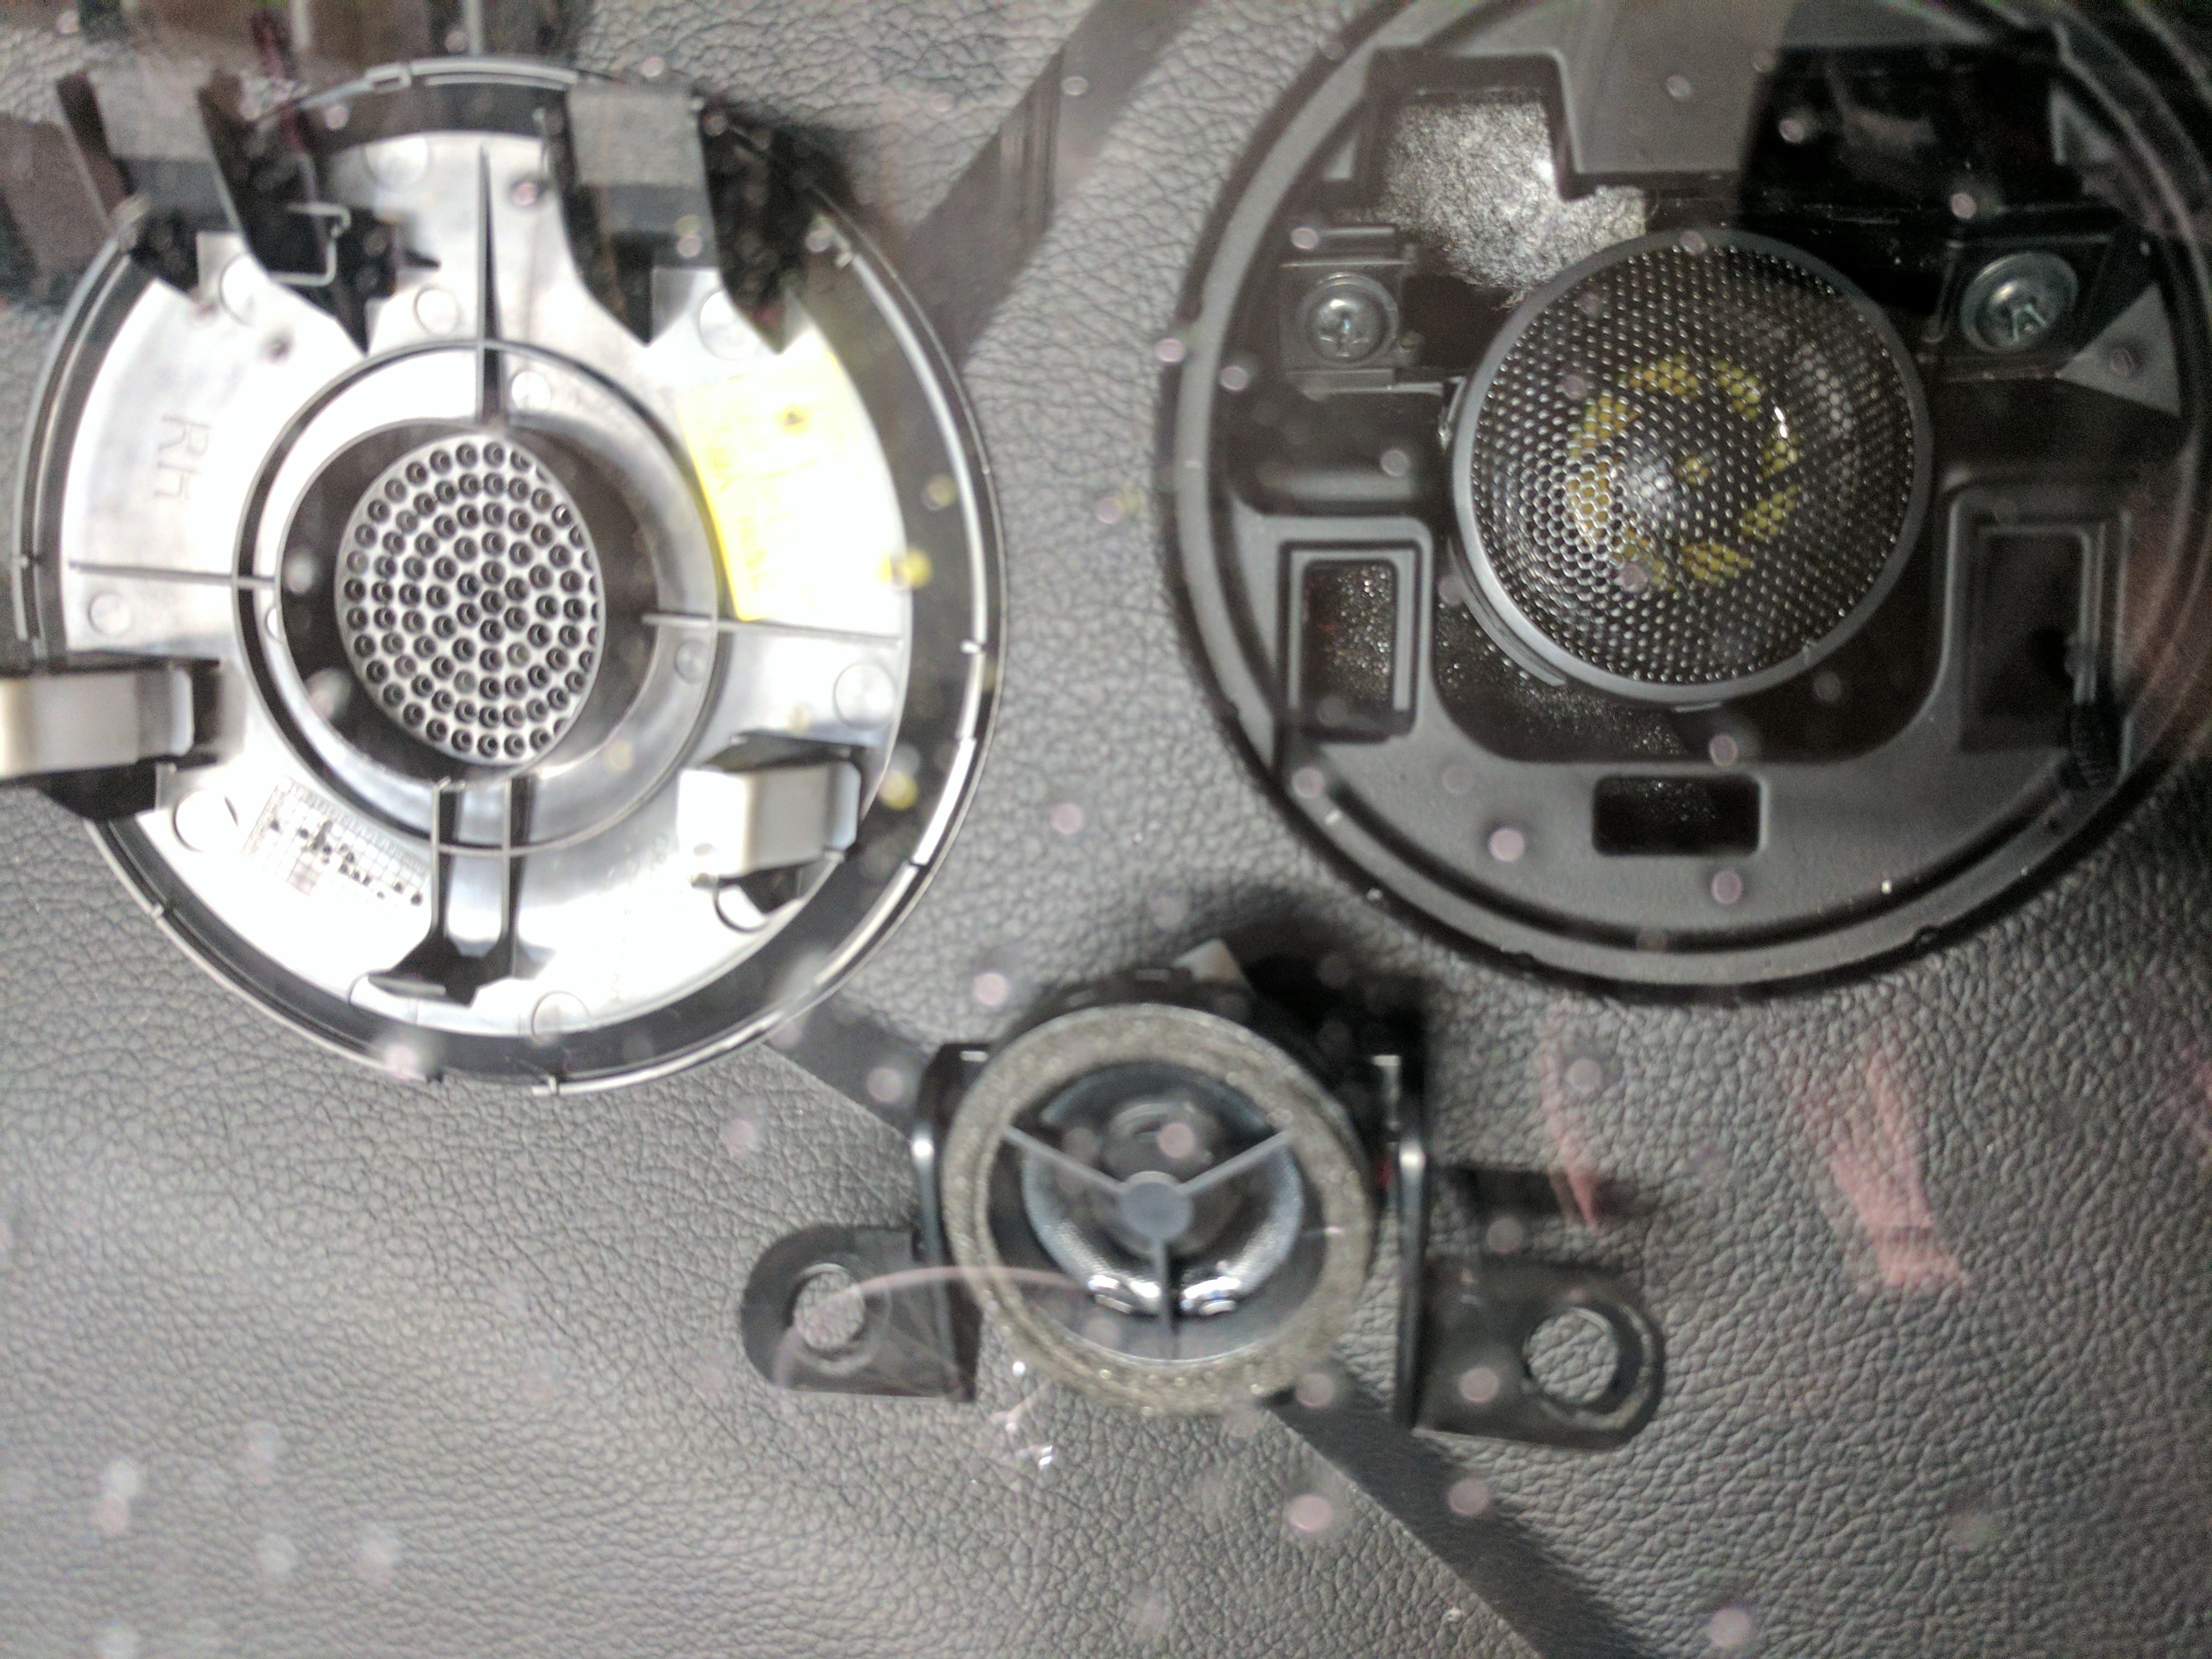 Kia Forte Koup Speaker Subwoofer Plan To Boss Wiring Name Scoobdude5 Views 254 Size 274 Mb